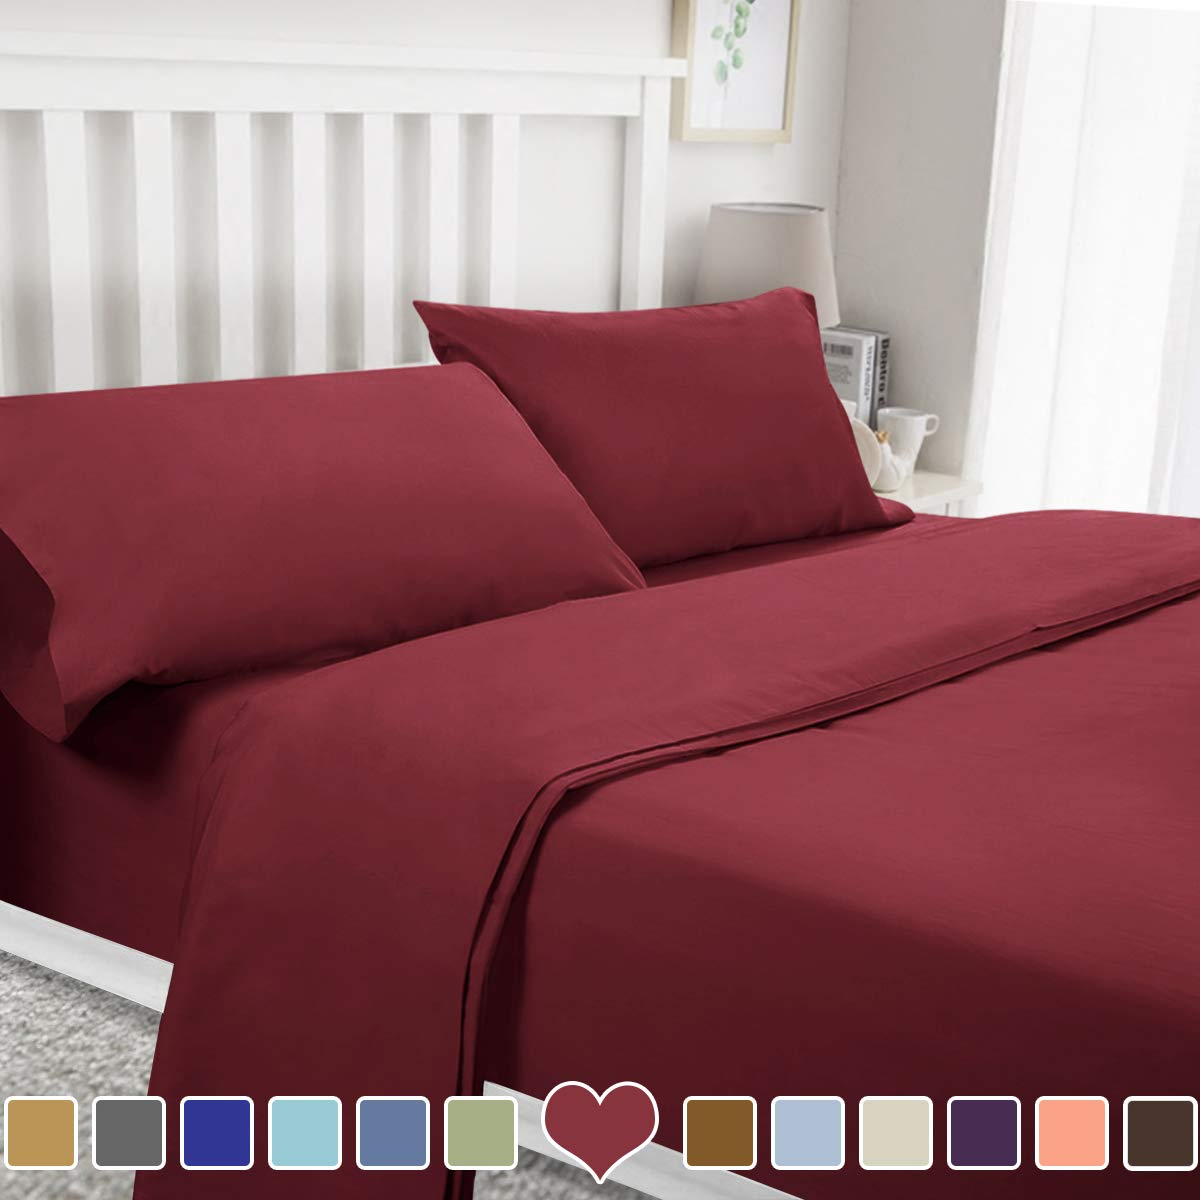 BYSURE 4 Piece Luxury Bed Sheet Set - Soft Durable Brushed Microfiber 1800 Thread Count Bedding Sheets with 14 Inch Deep Pockets,Wrinkle & Fade Resistant(Full,Burgundy)